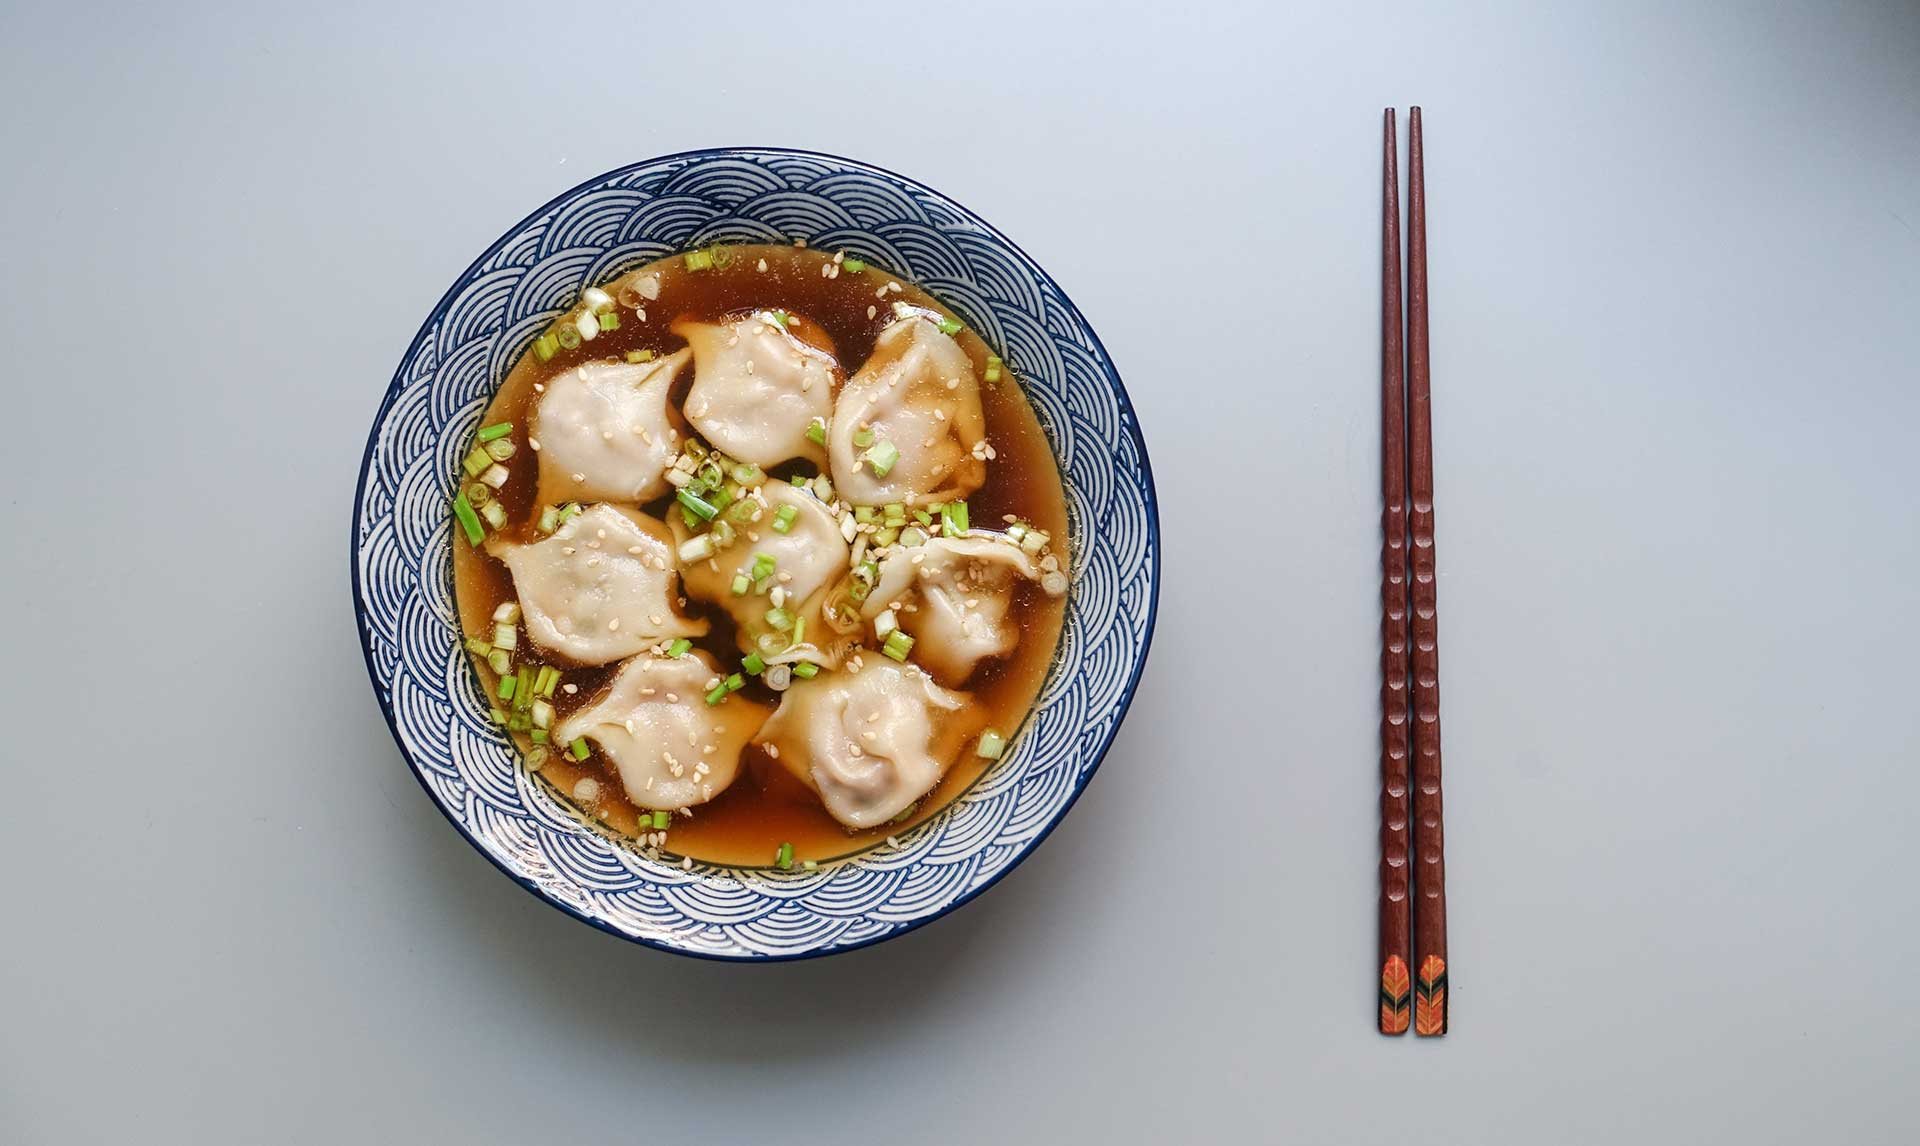 chinese dumplings in a bowl with wooden chopsticks next to it